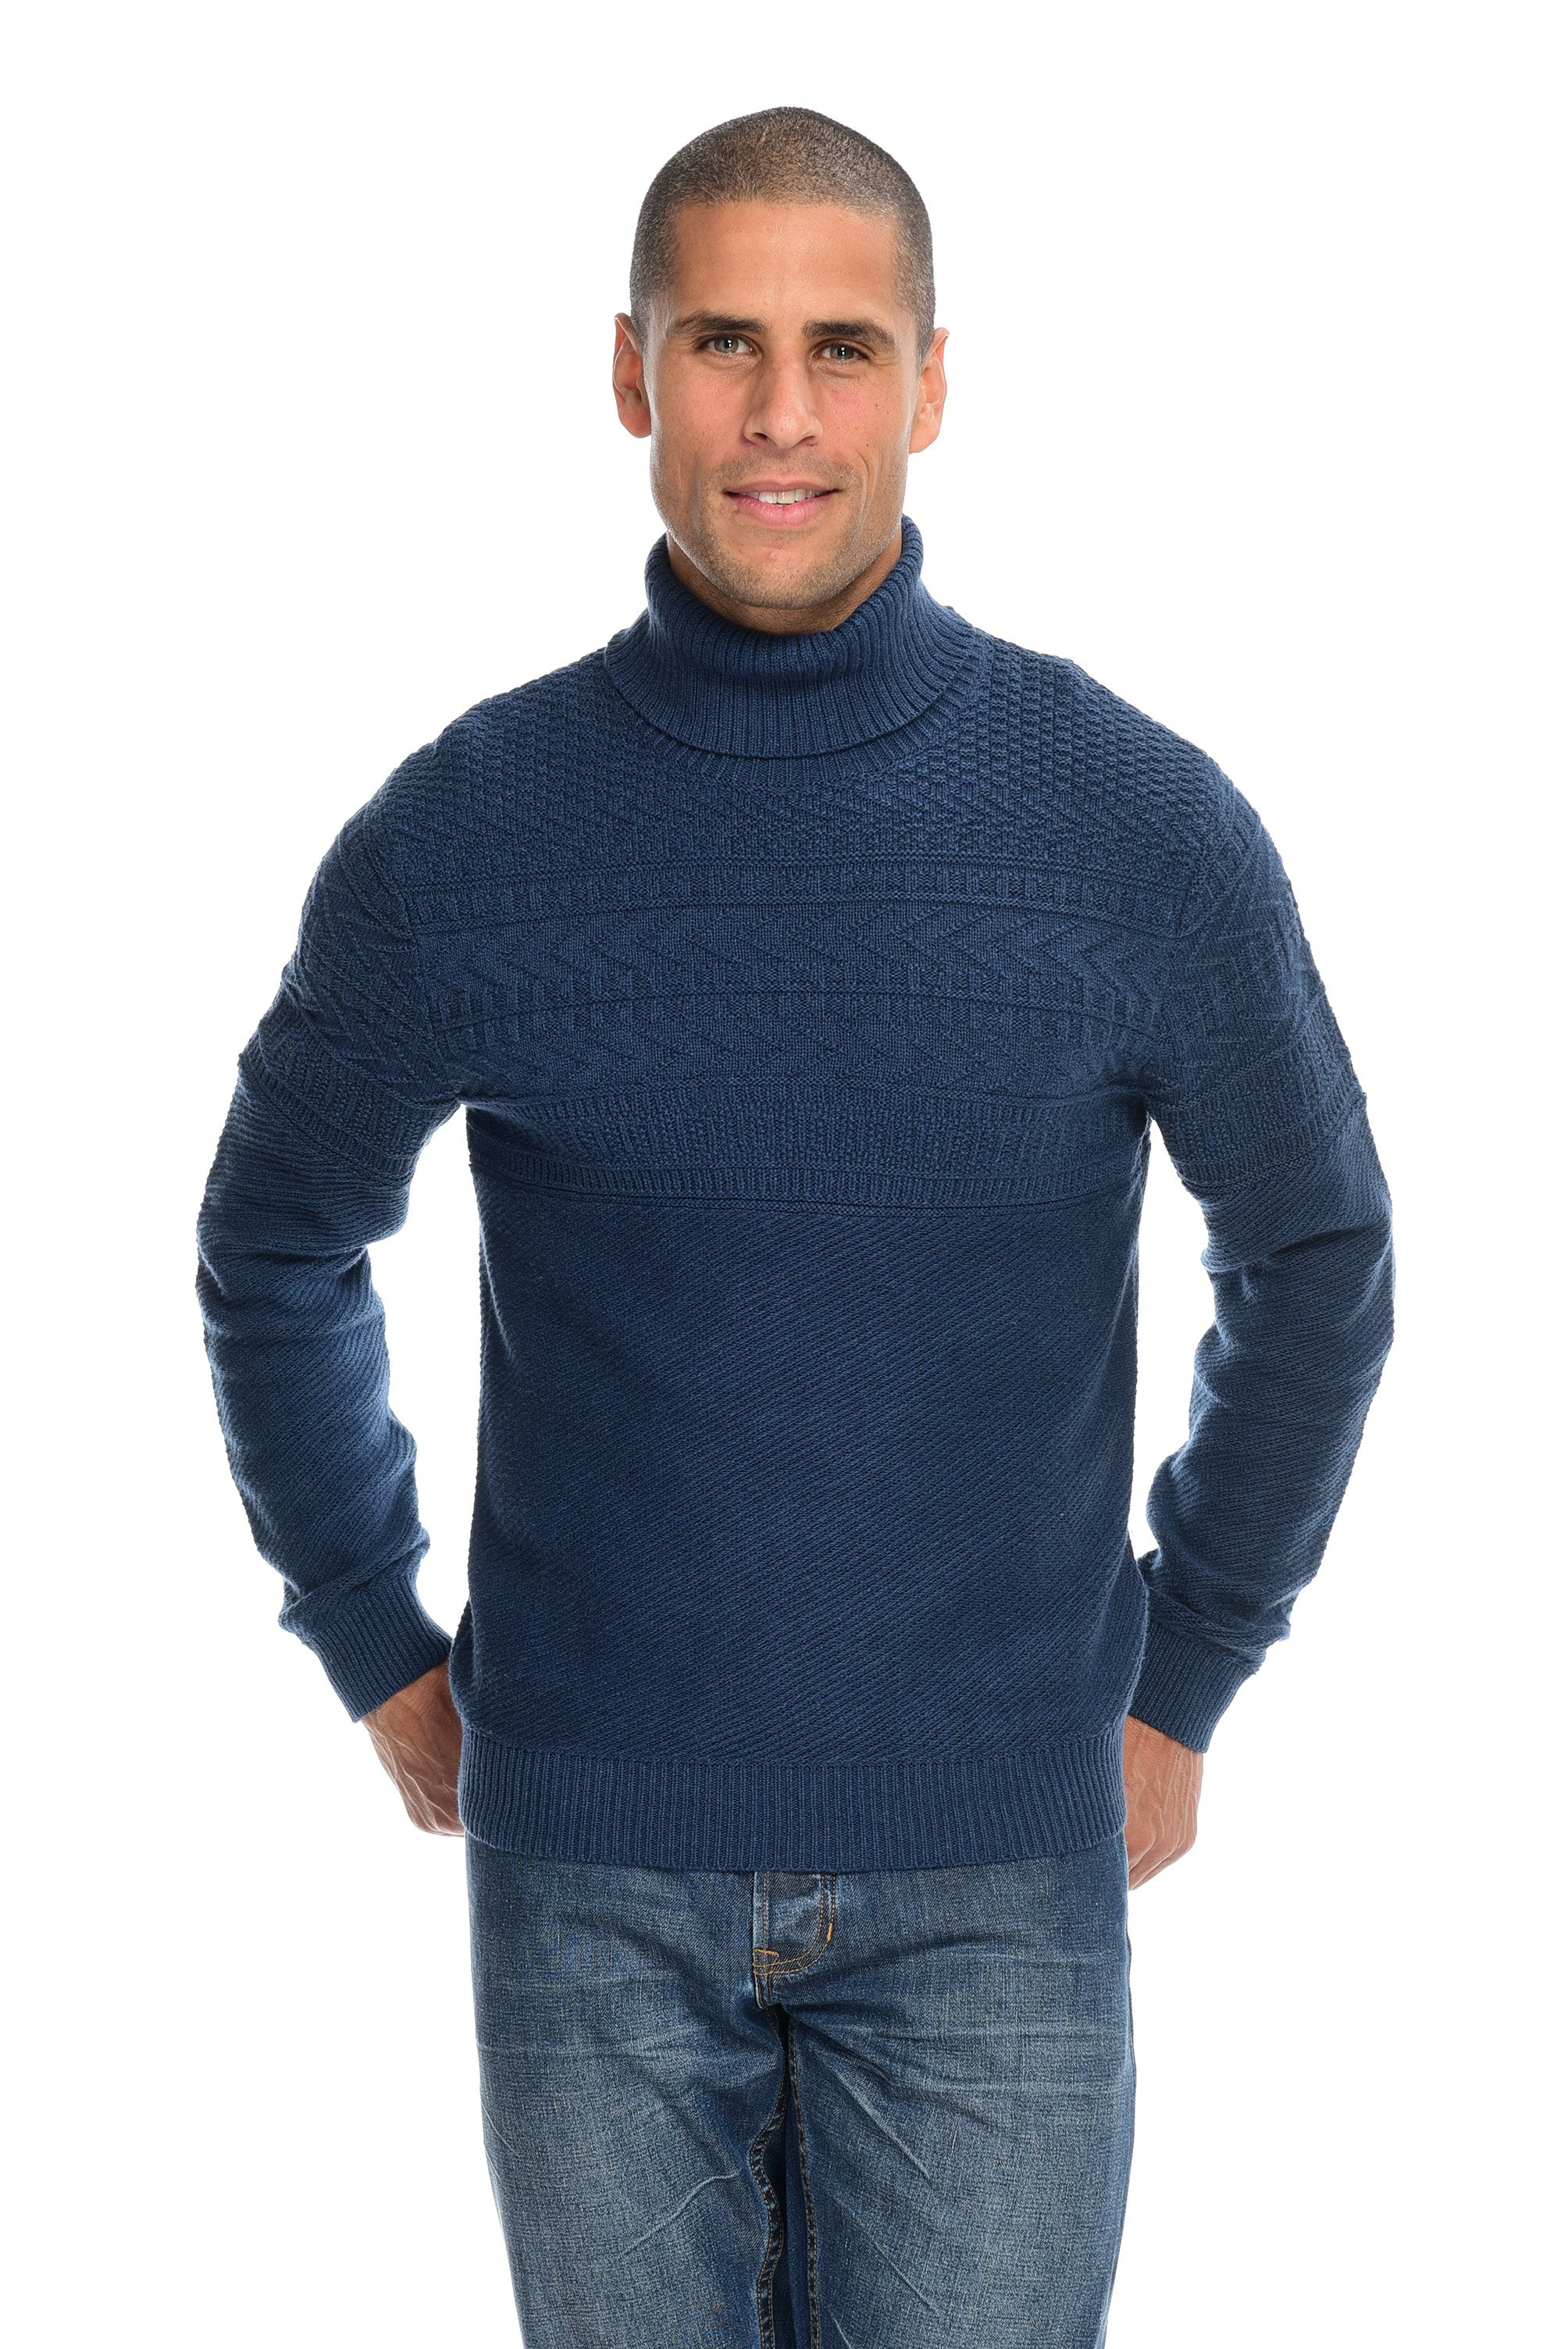 Fisherman Knit Turtleneck Sweater Men's